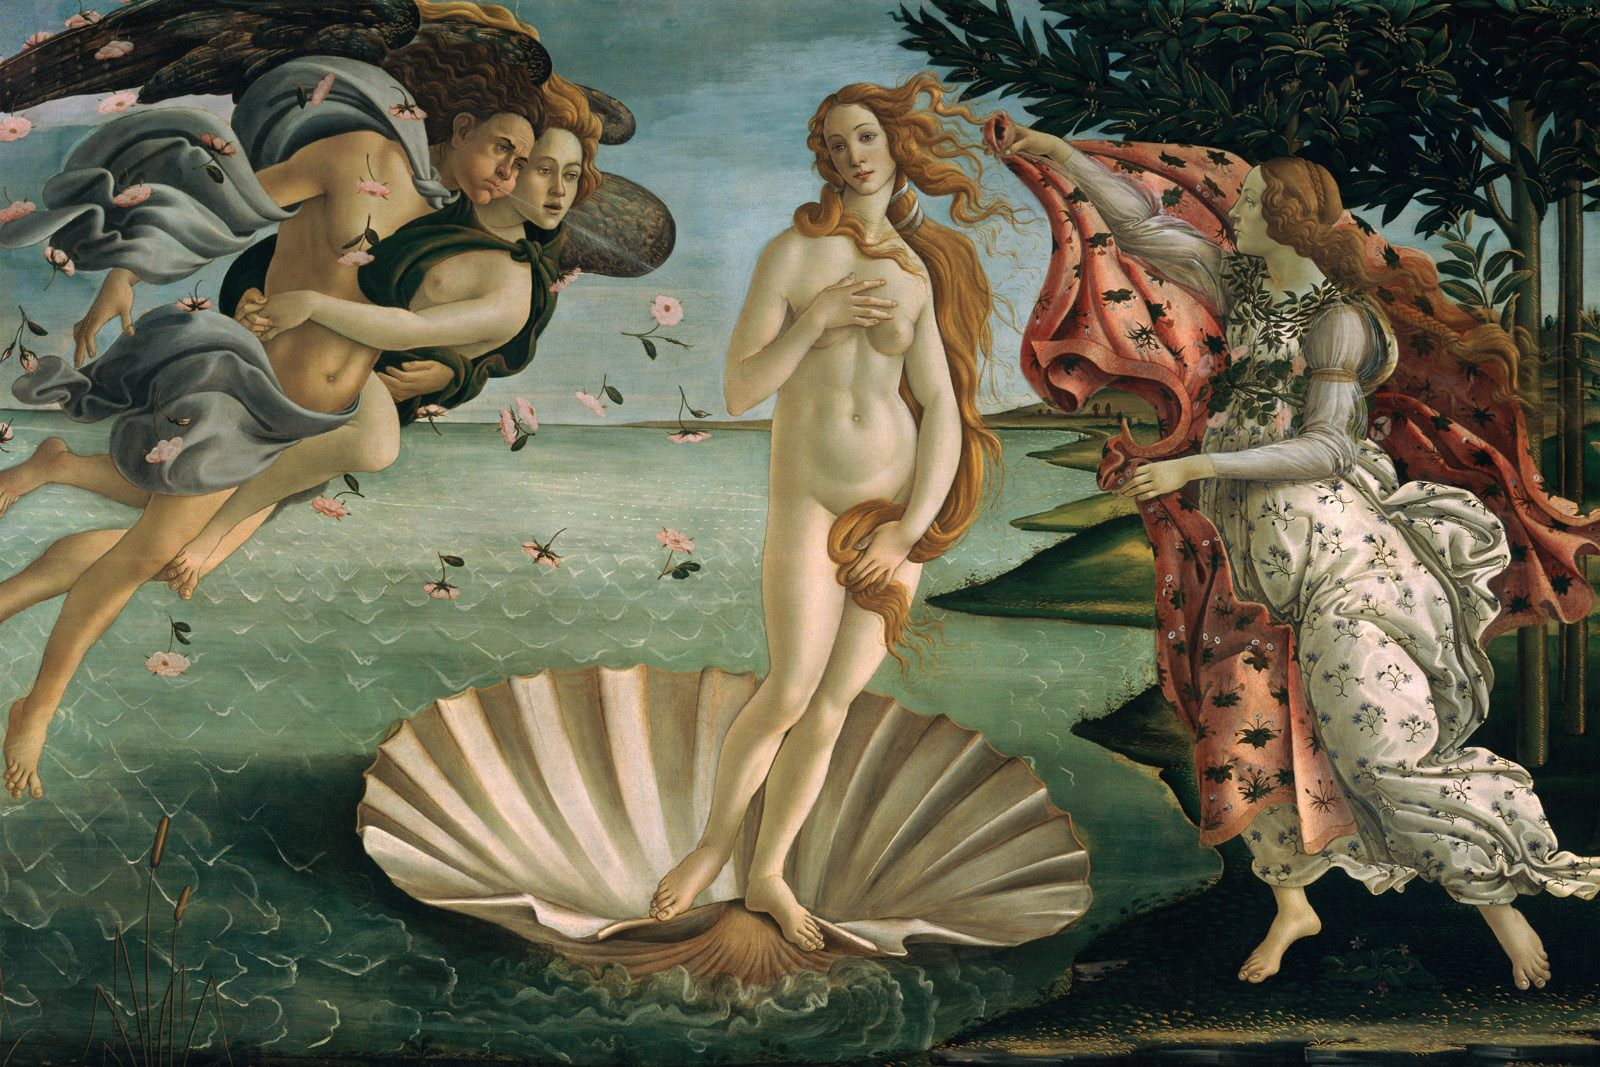 http://uploads5.wikipaintings.org/images/sandro-botticelli/the-birth-of-venus-1485(1).jpg